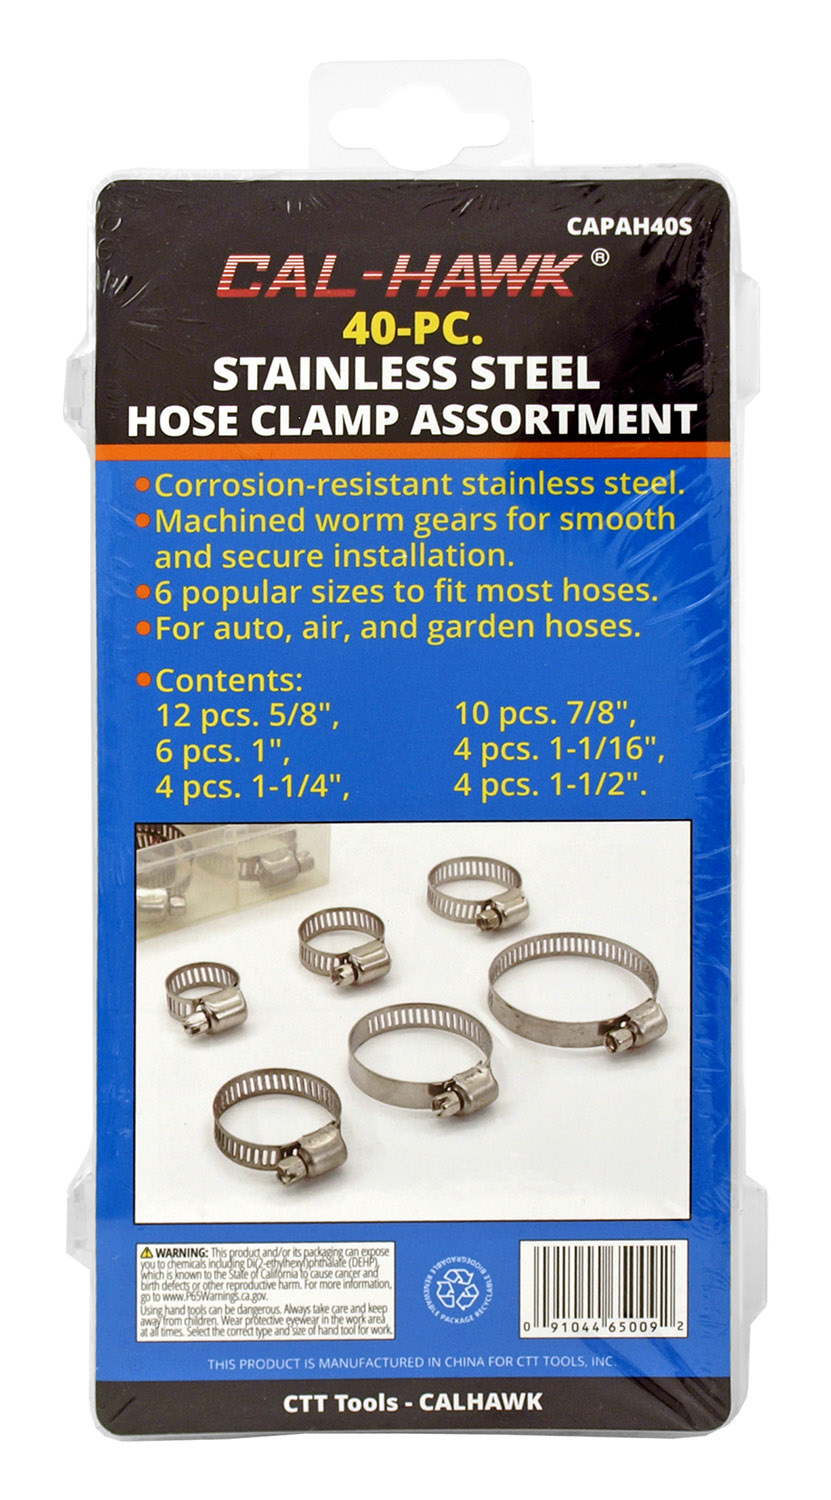 40 PC. Stainless Steel Hose Clamp Assortment - Cal-Hawk CAPAH405